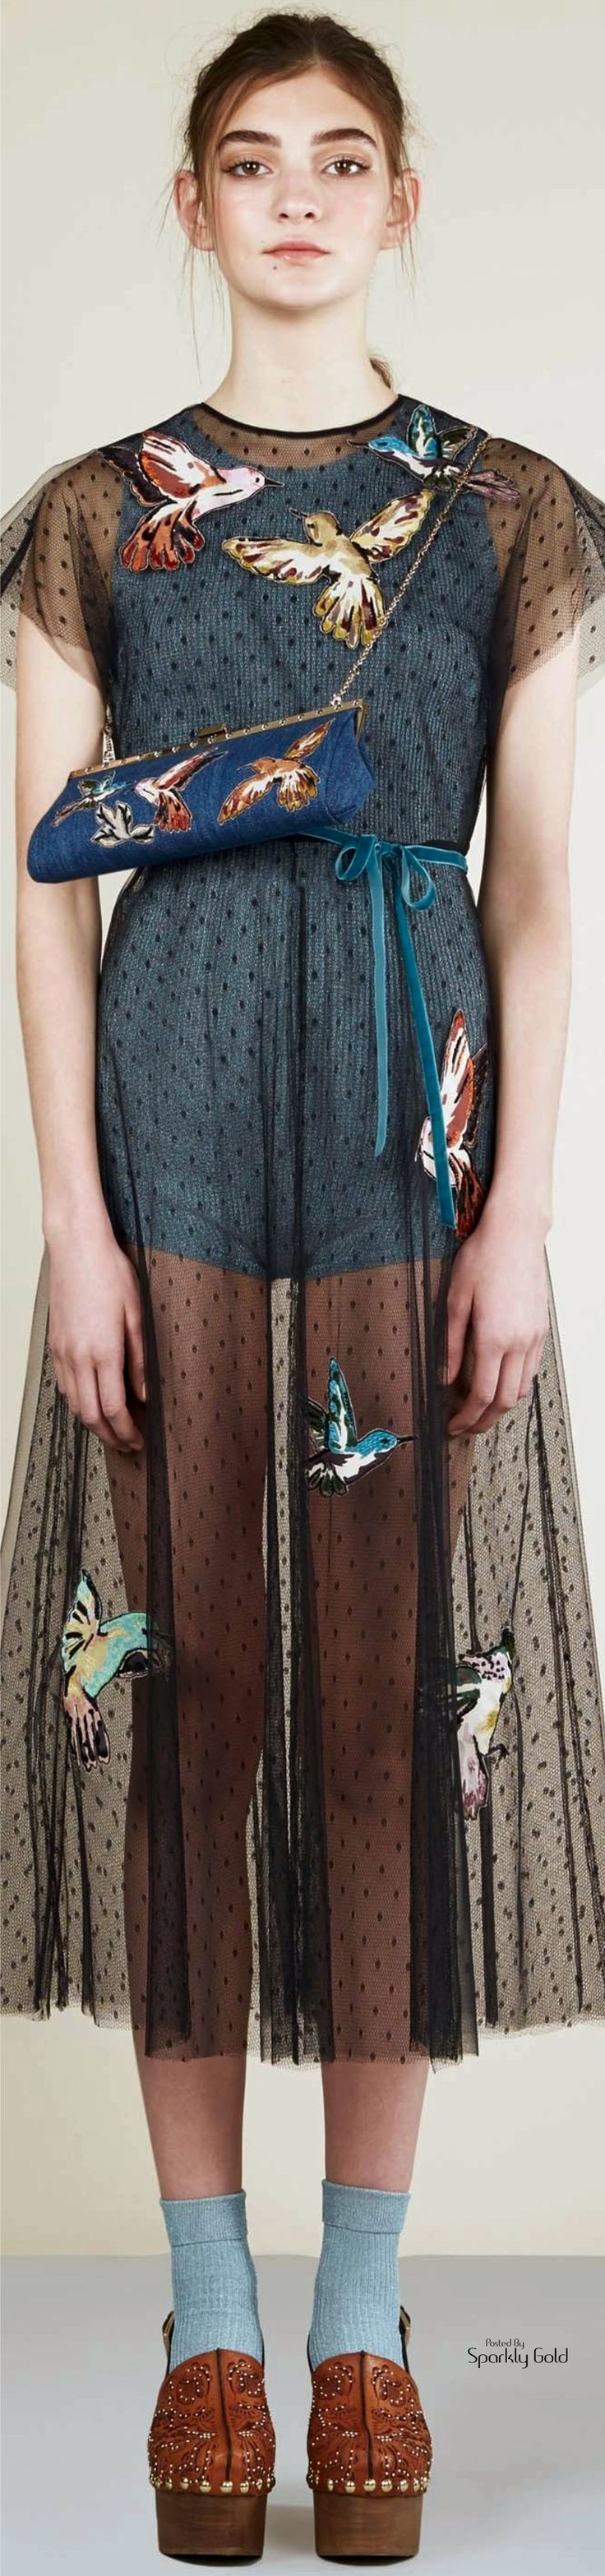 """Red Valentino Resort 2017"" girl don't look so mad, your dress is super fly! birdman loves you"